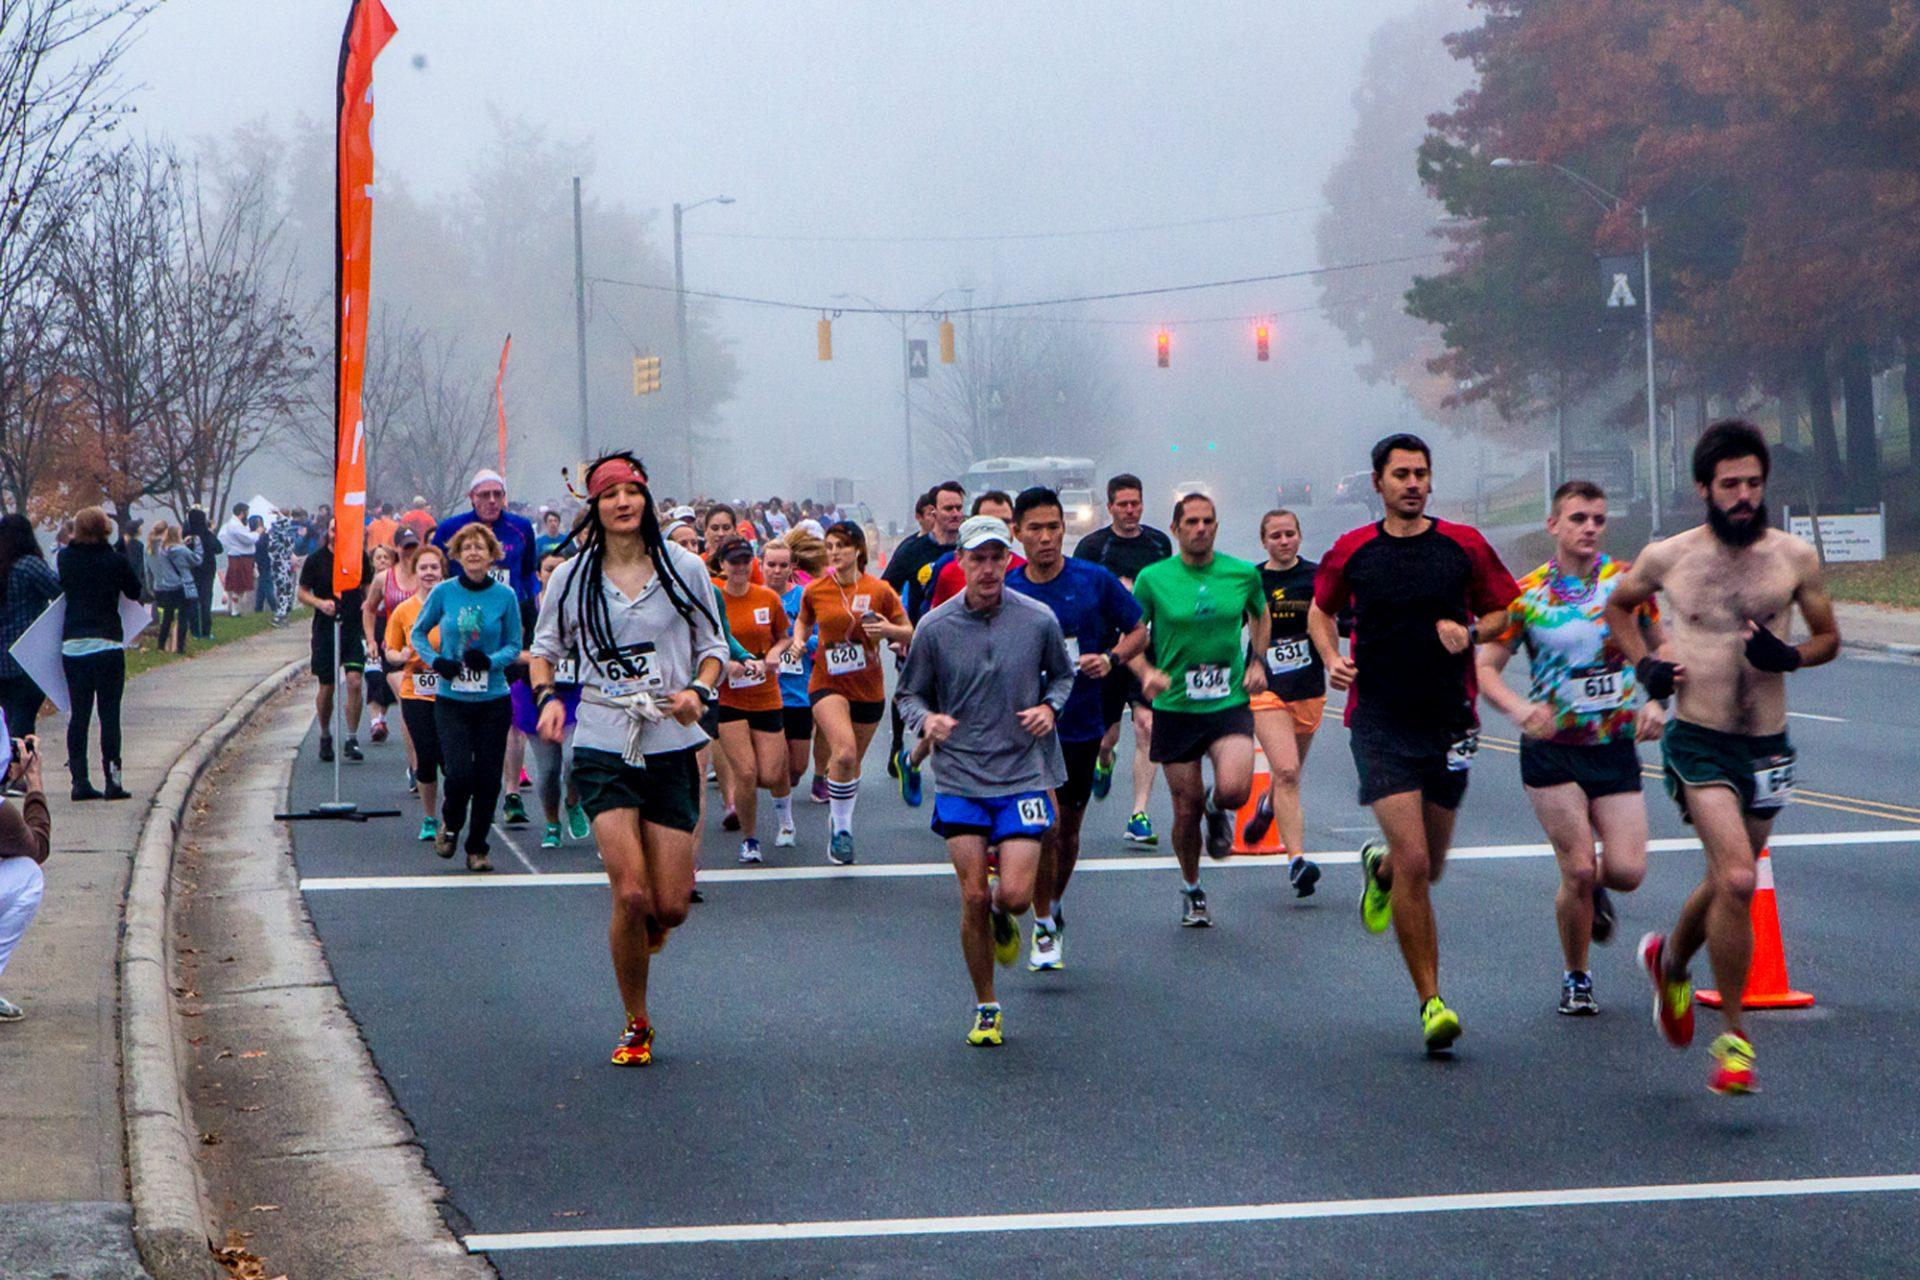 The+participants+of+the+2016+Spooky+Duke+Race+run+down+Rivers+Street+in+various+costumes.